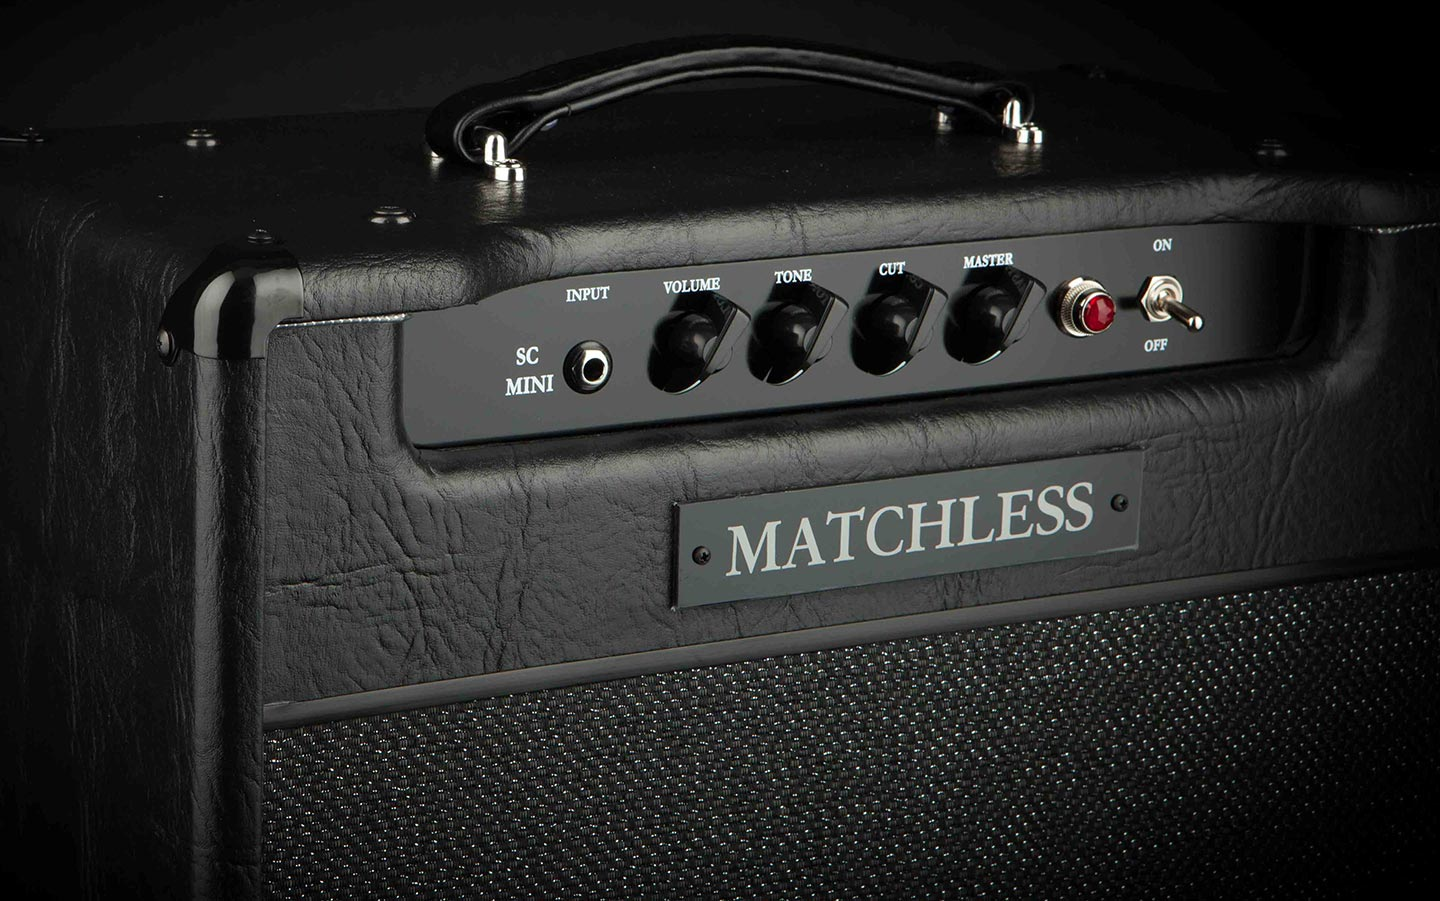 Matchless SC Mini Review